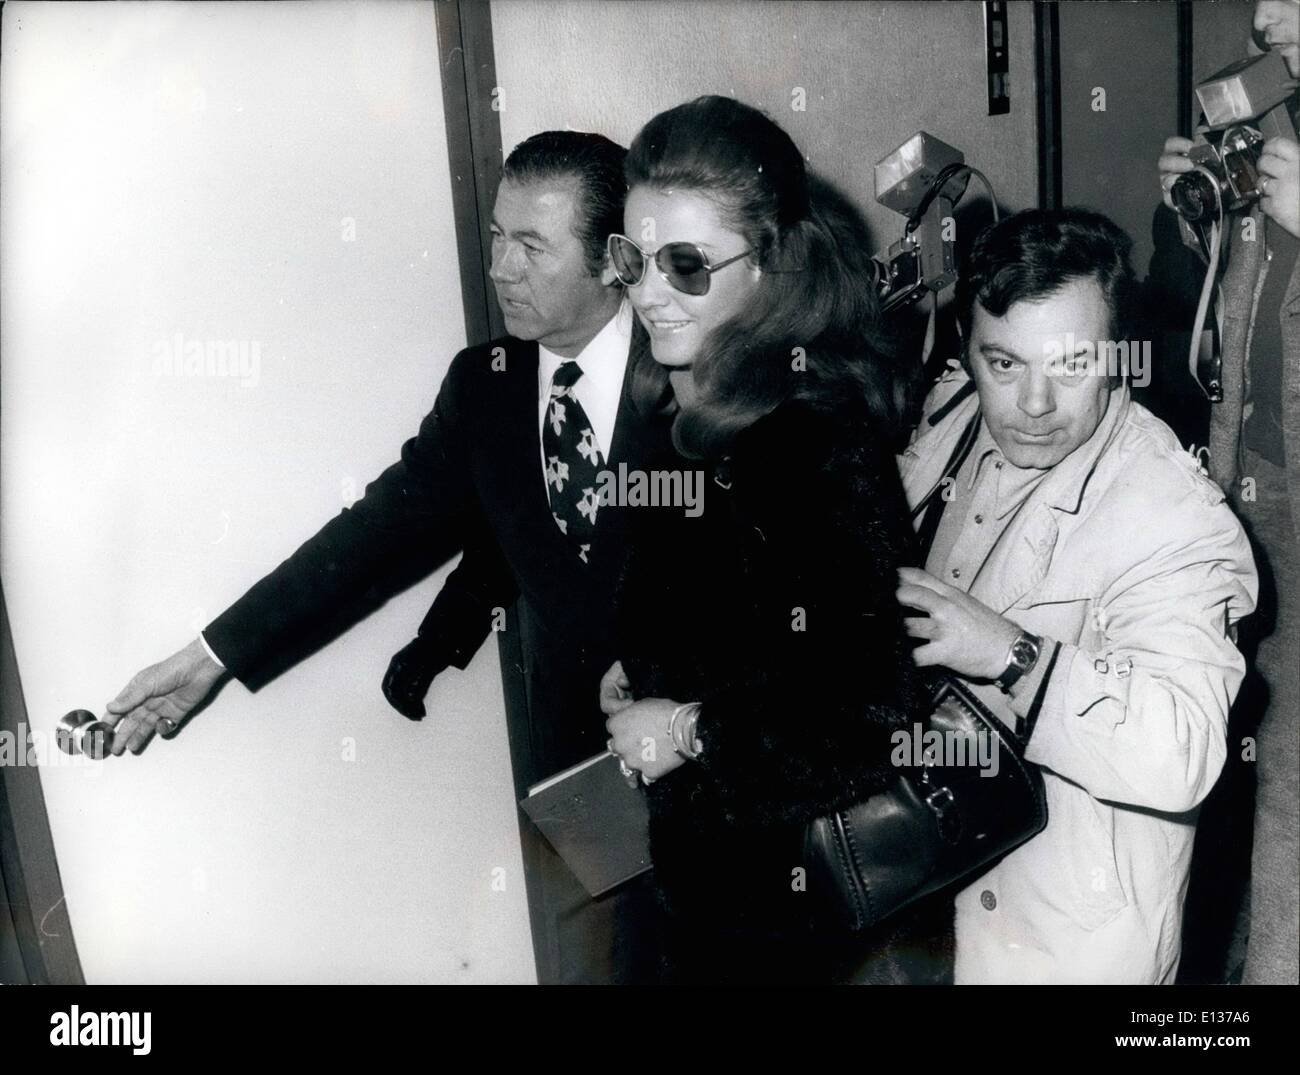 Feb. 29, 2012 - Polish actress Magda Konopka talks with her lawyer angelozzi Garibolid after being interrogated by Rome magistrate investigating a drug scandal. She and 24 other persons, including jet set personalities, were named suspects in the case of the ''Number One'' night club, where drugs were allegedly found. - Stock Image